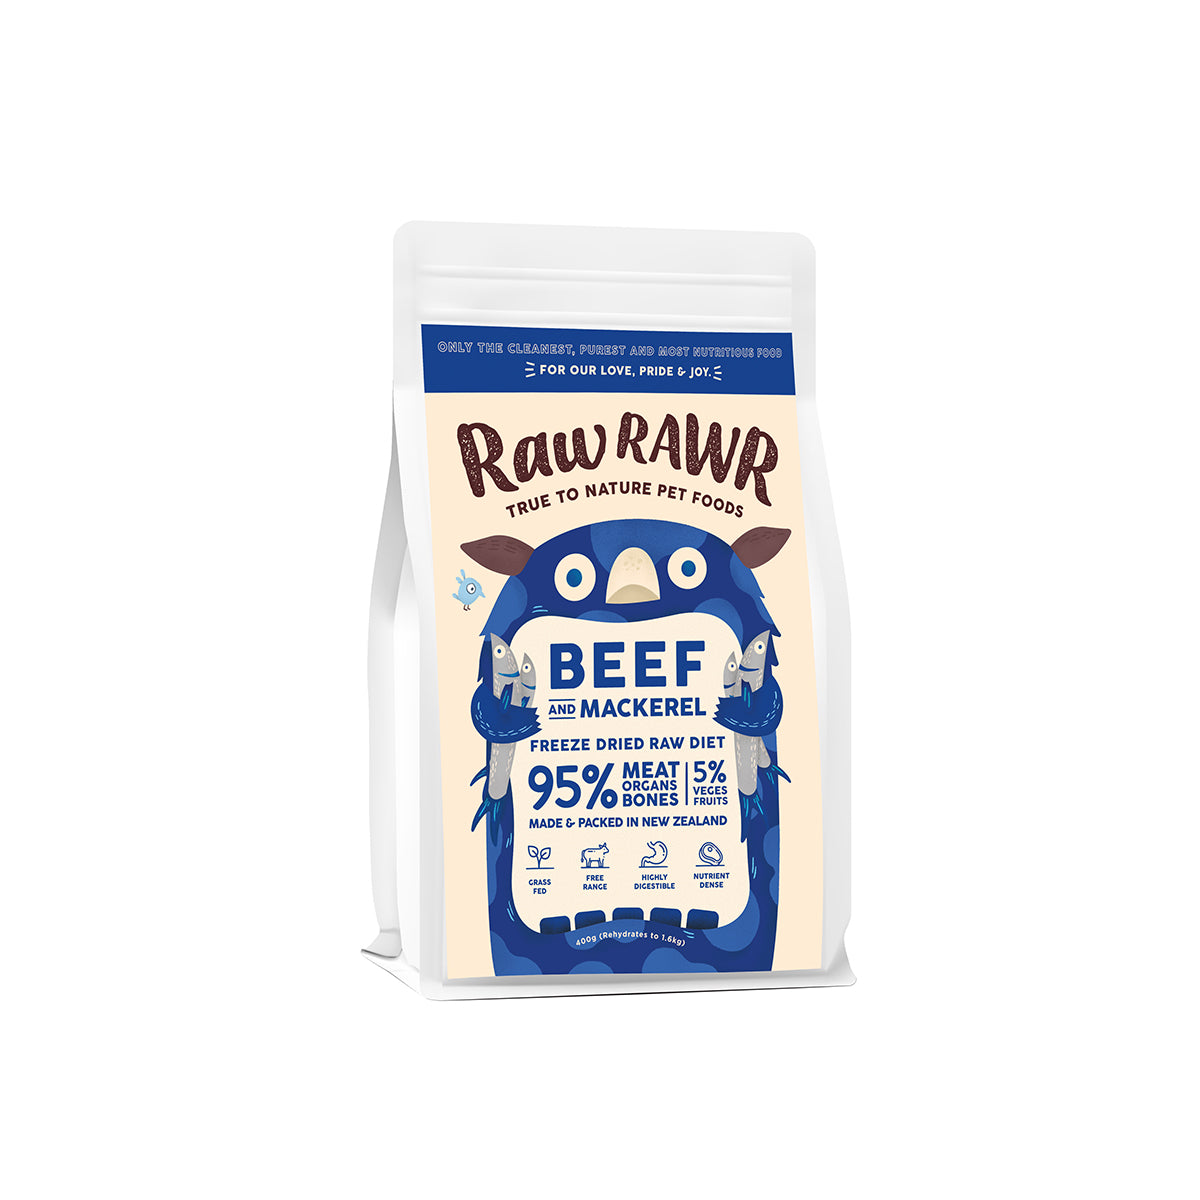 Raw Rawr Freeze Dried Balanced Diet - Beef & Mackerel